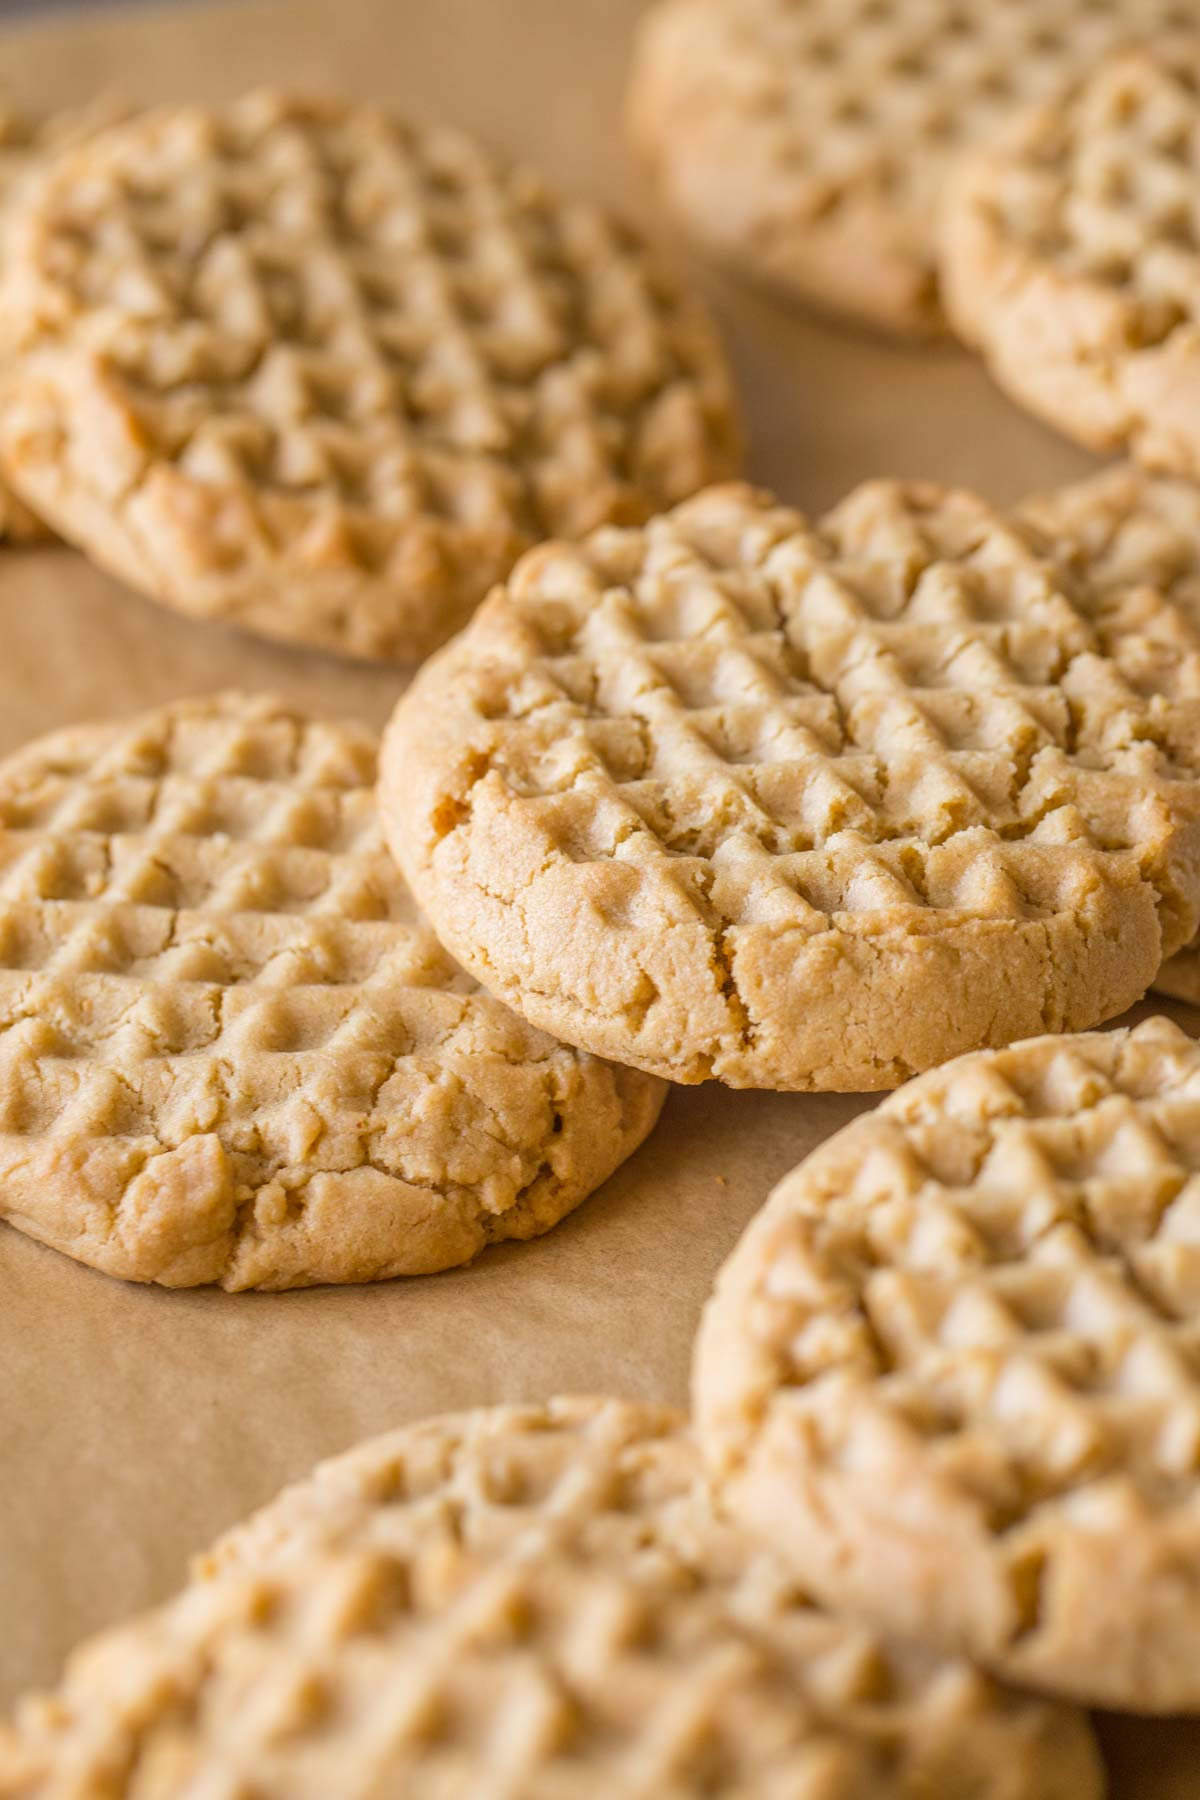 Soft and Chewy Peanut Butter Cookies spread out on a parchment paper baking sheet.